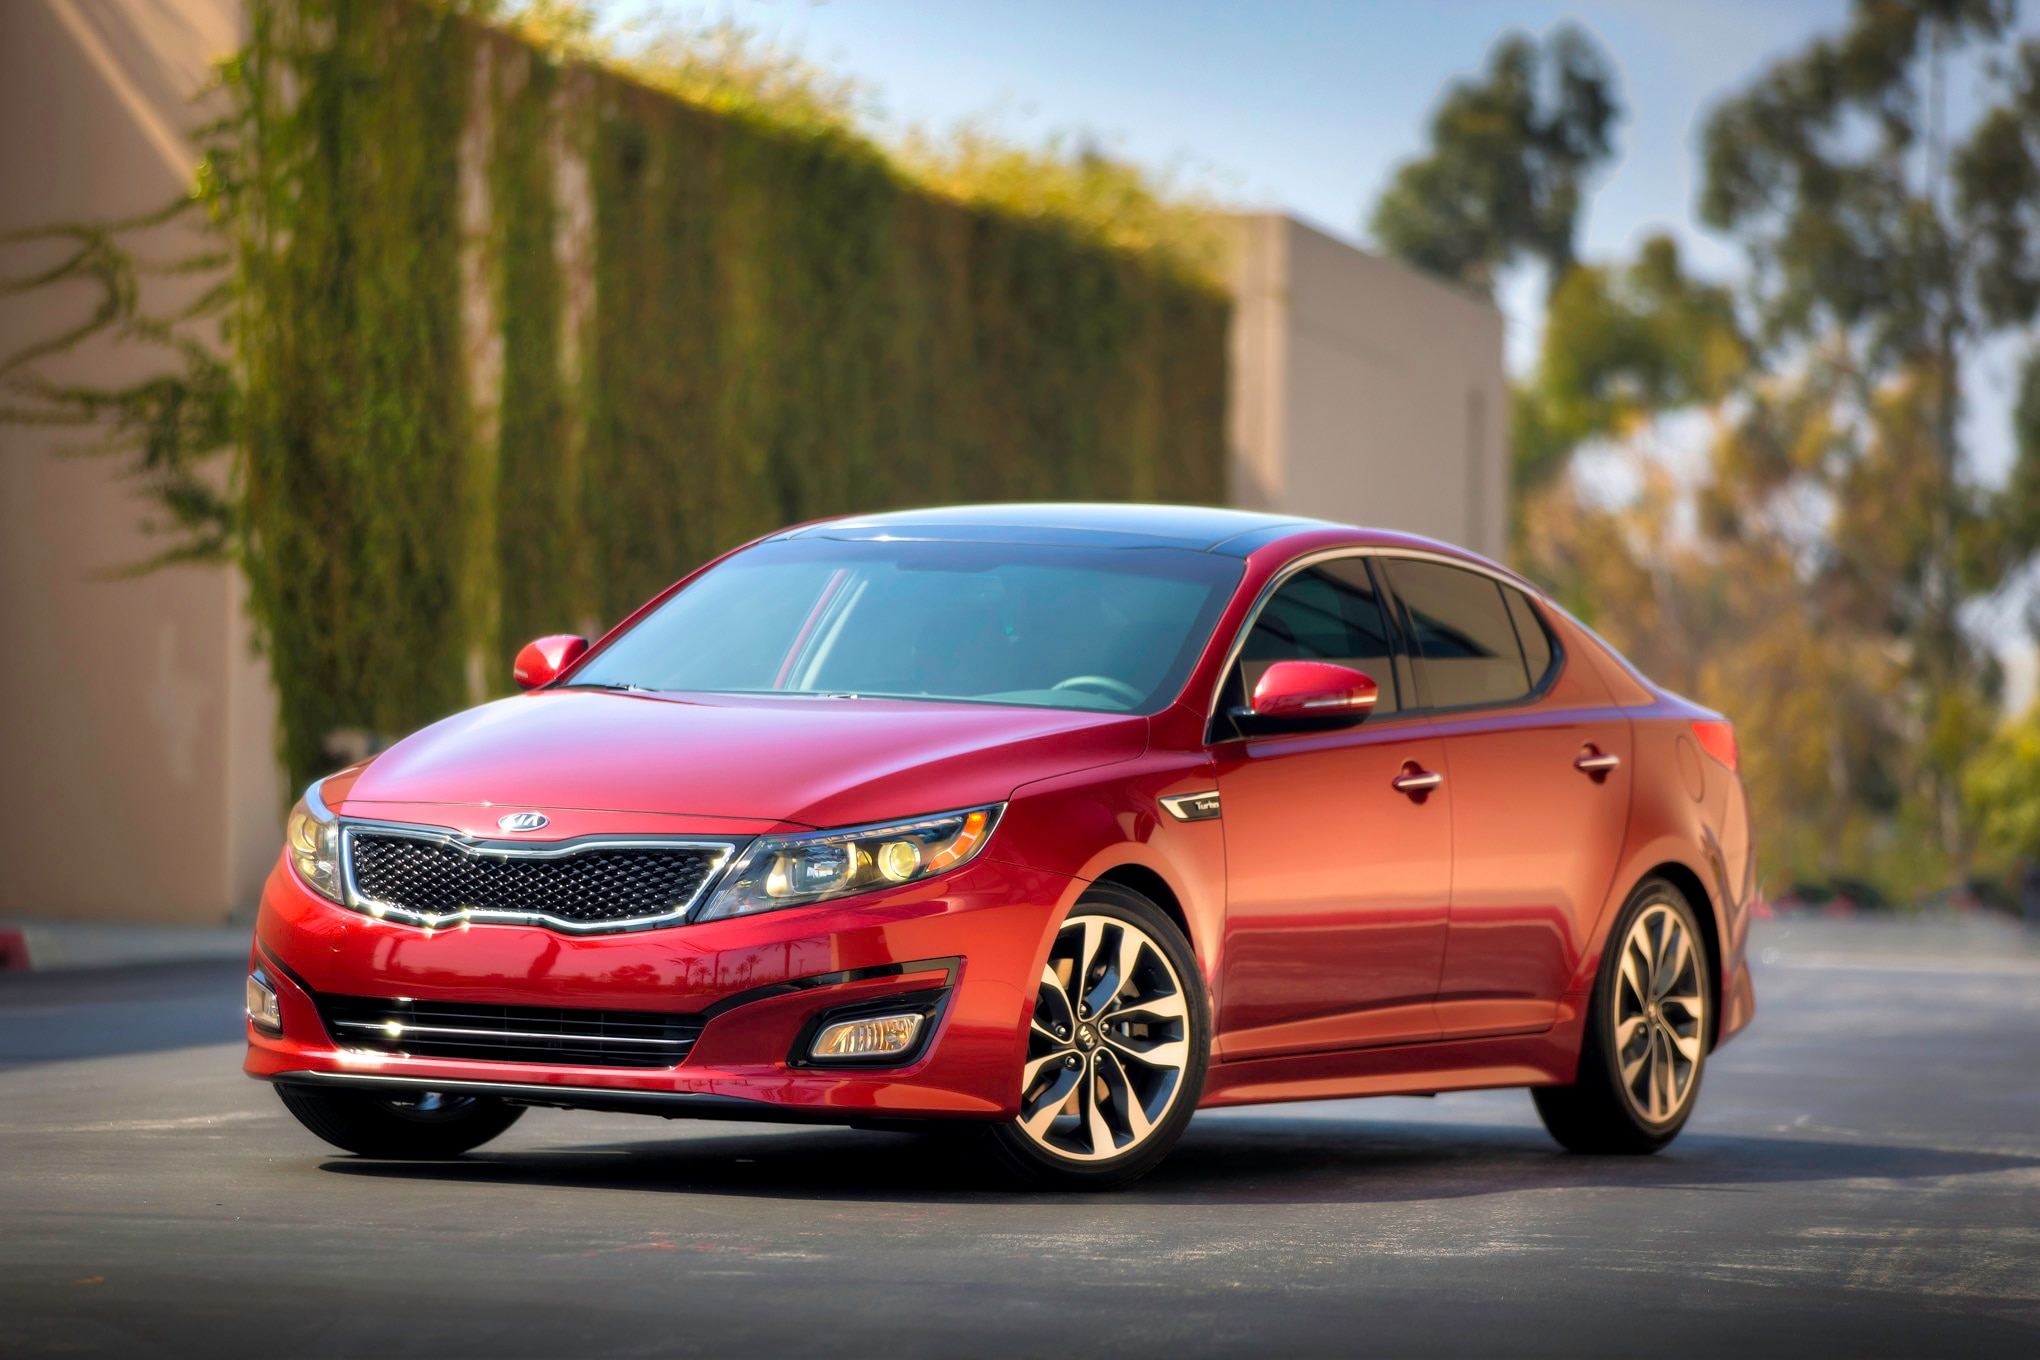 2015 Kia Optima Front Three Quarter